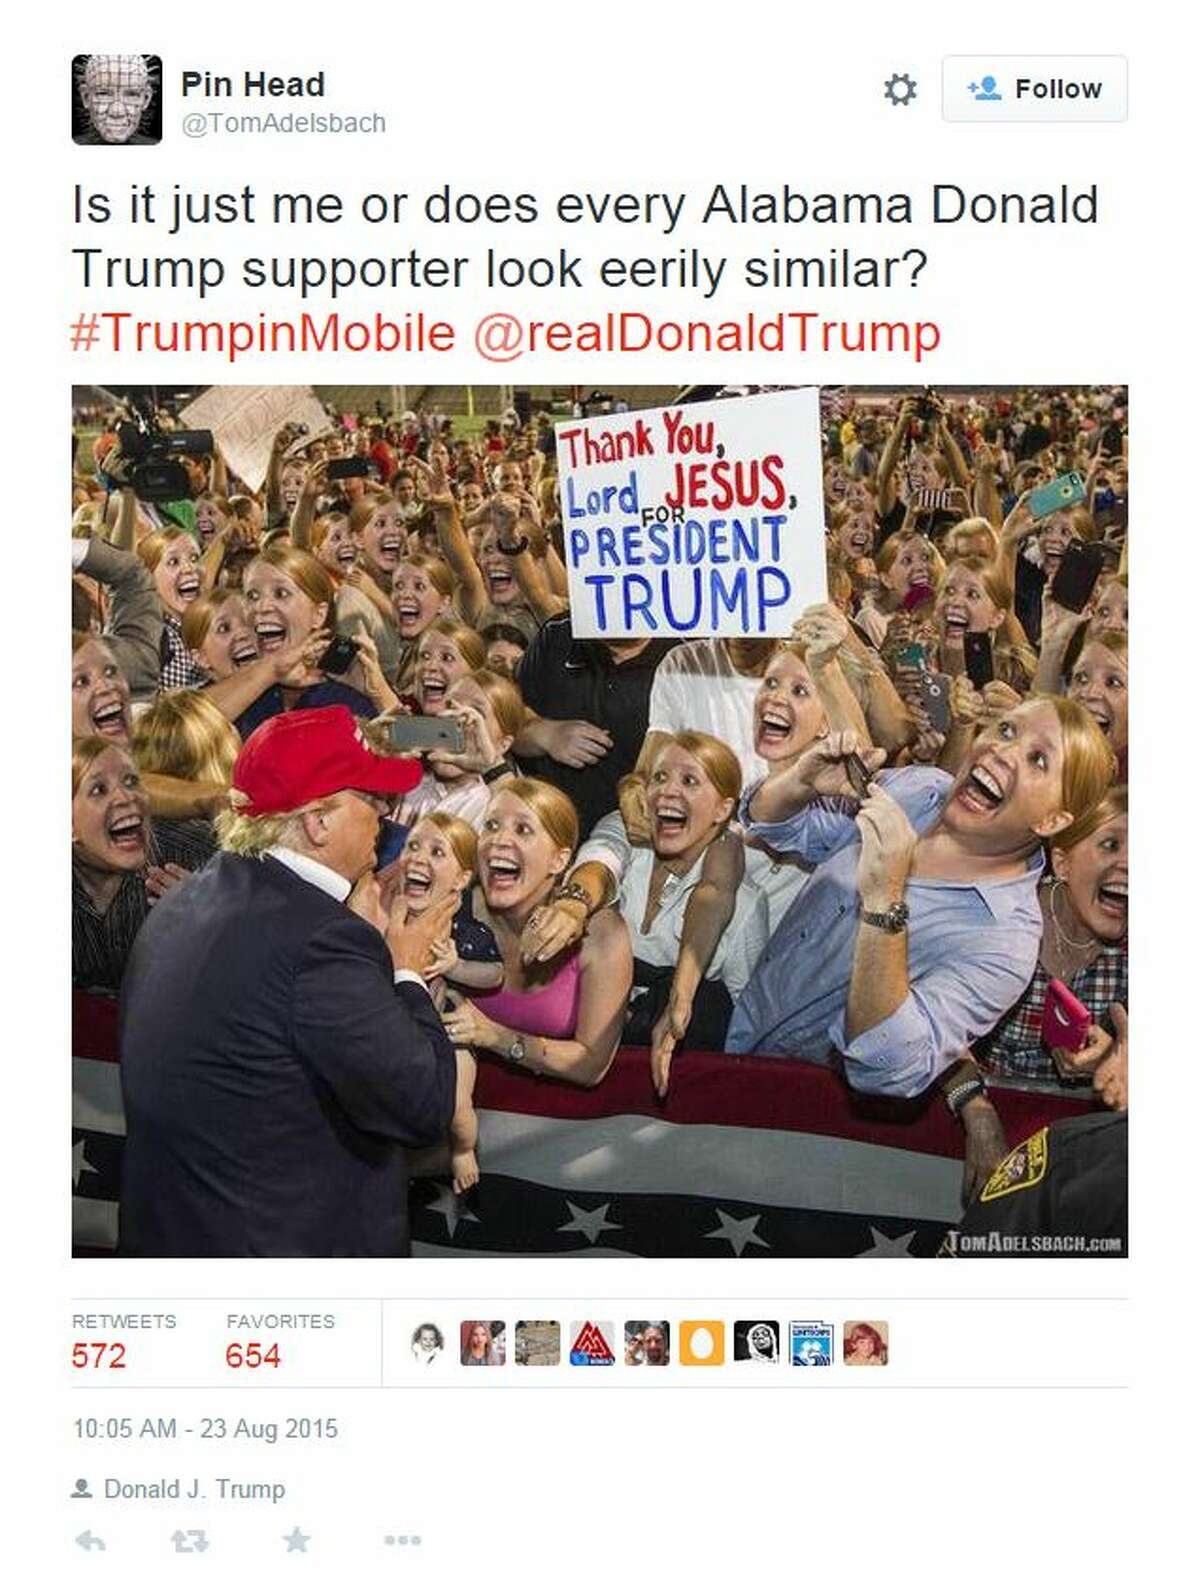 Is it just me or does every Alabama Donald Trump supporter look eerily similar? #TrumpinMobile @realDonaldTrump